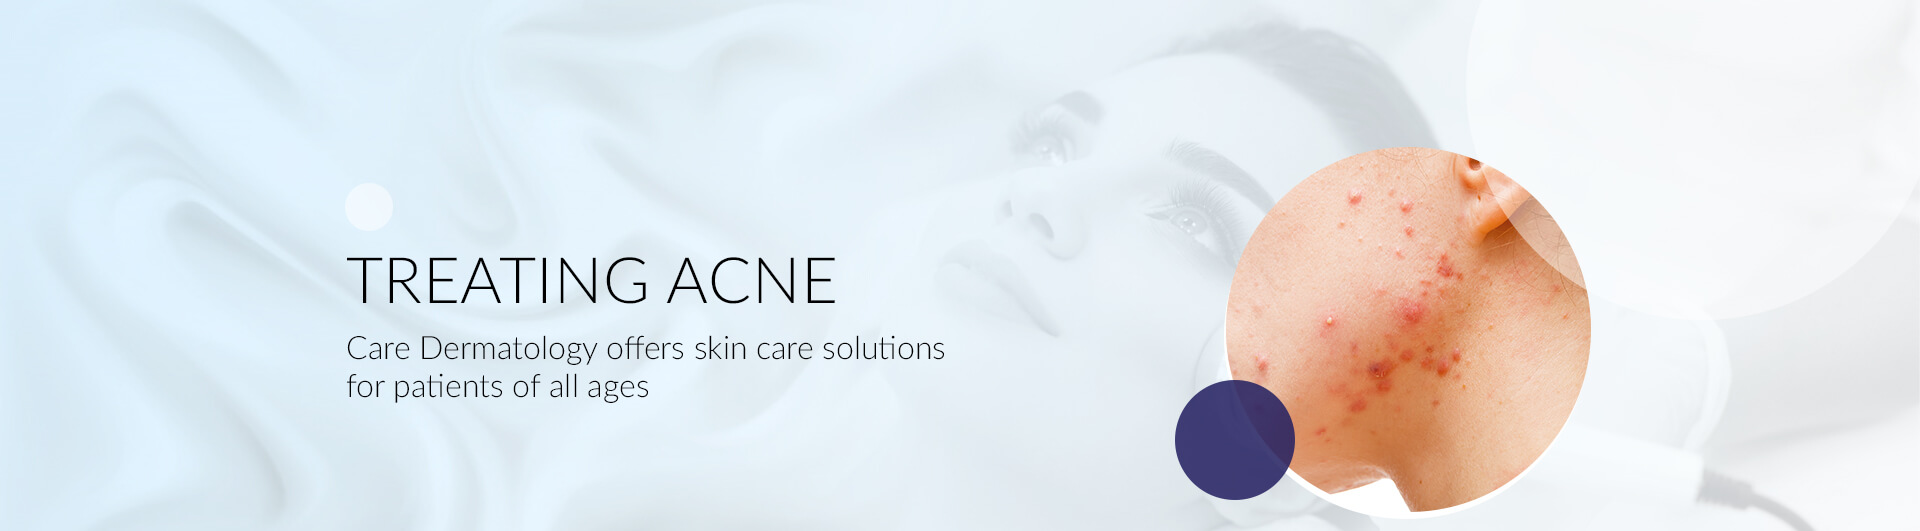 Treating Acne in Florida